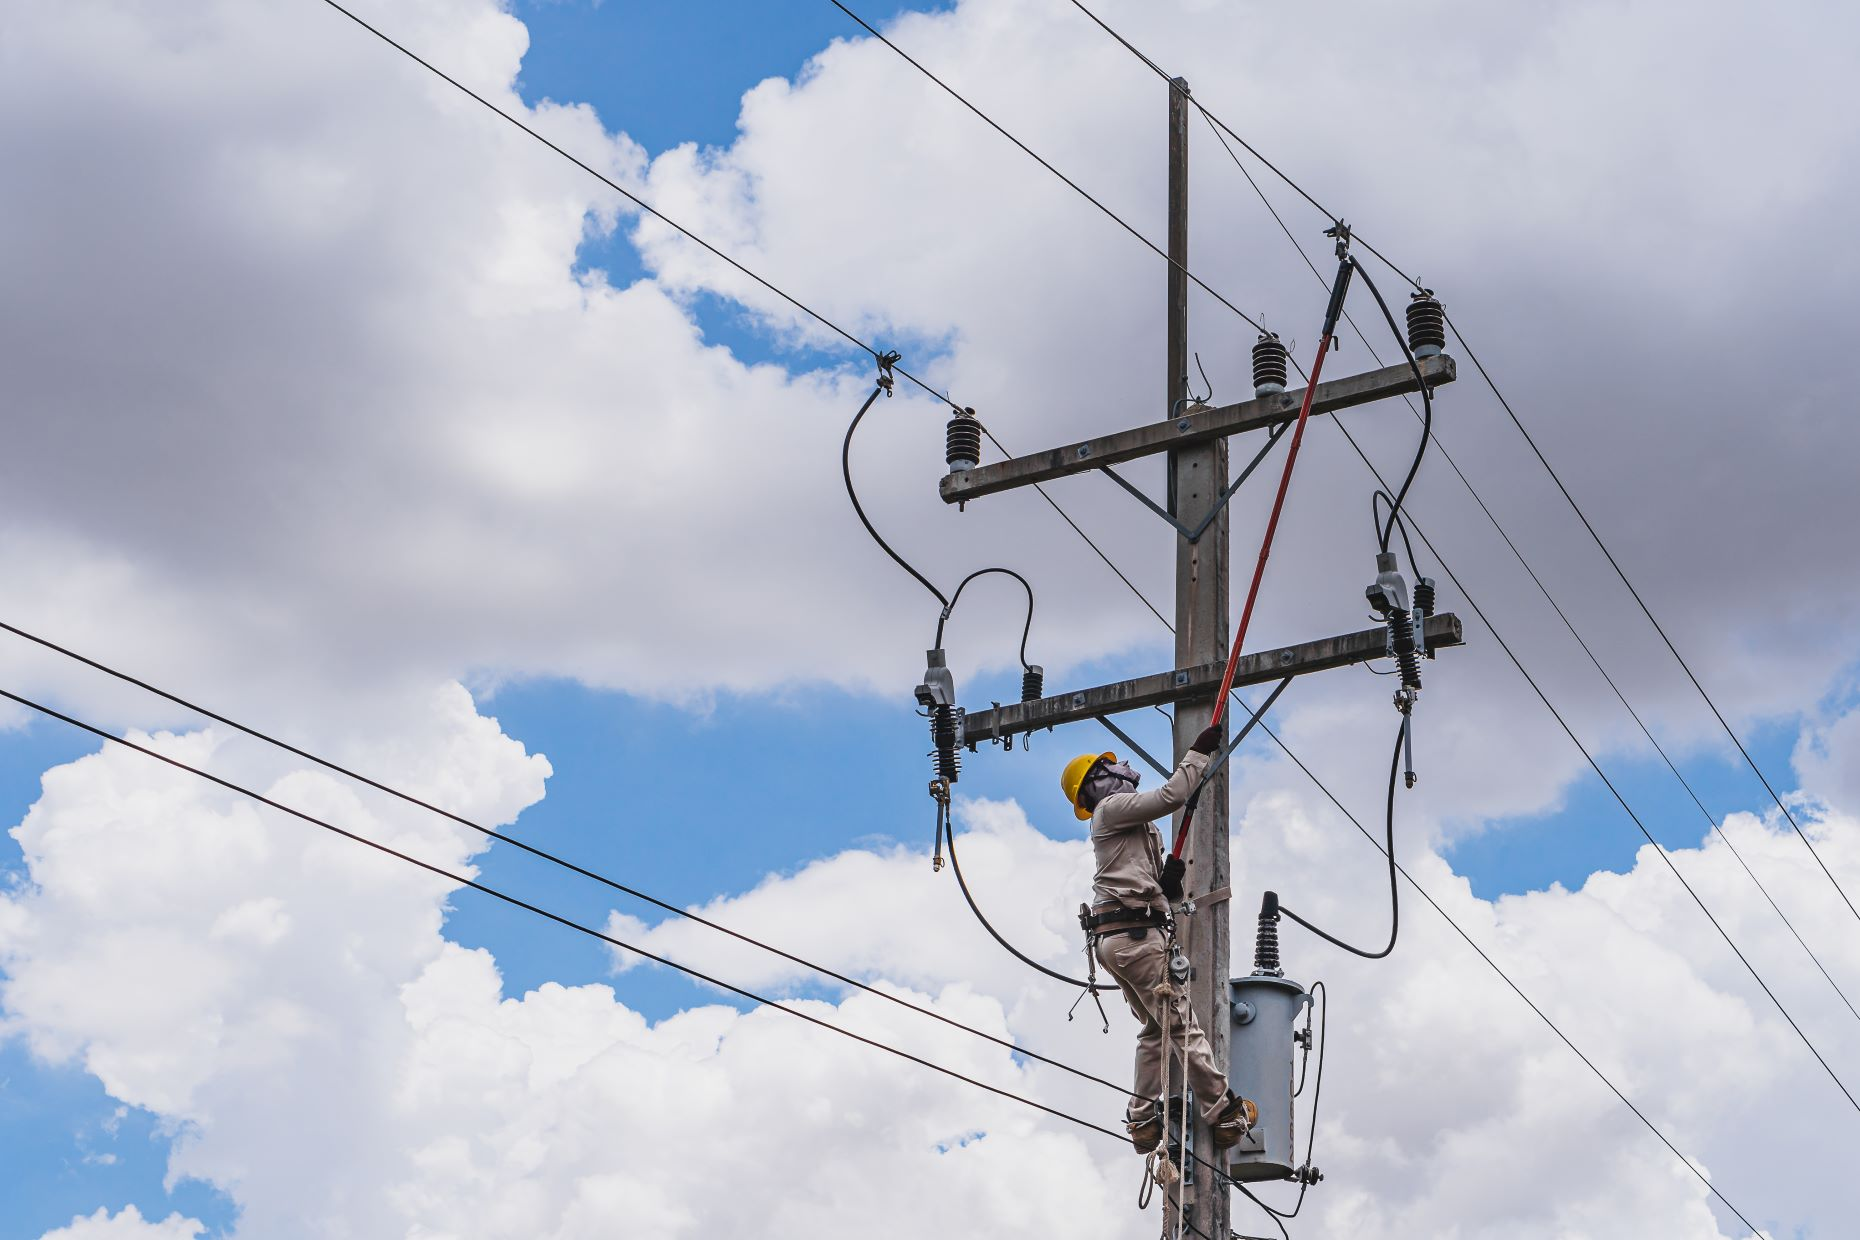 Lineman working on a power line